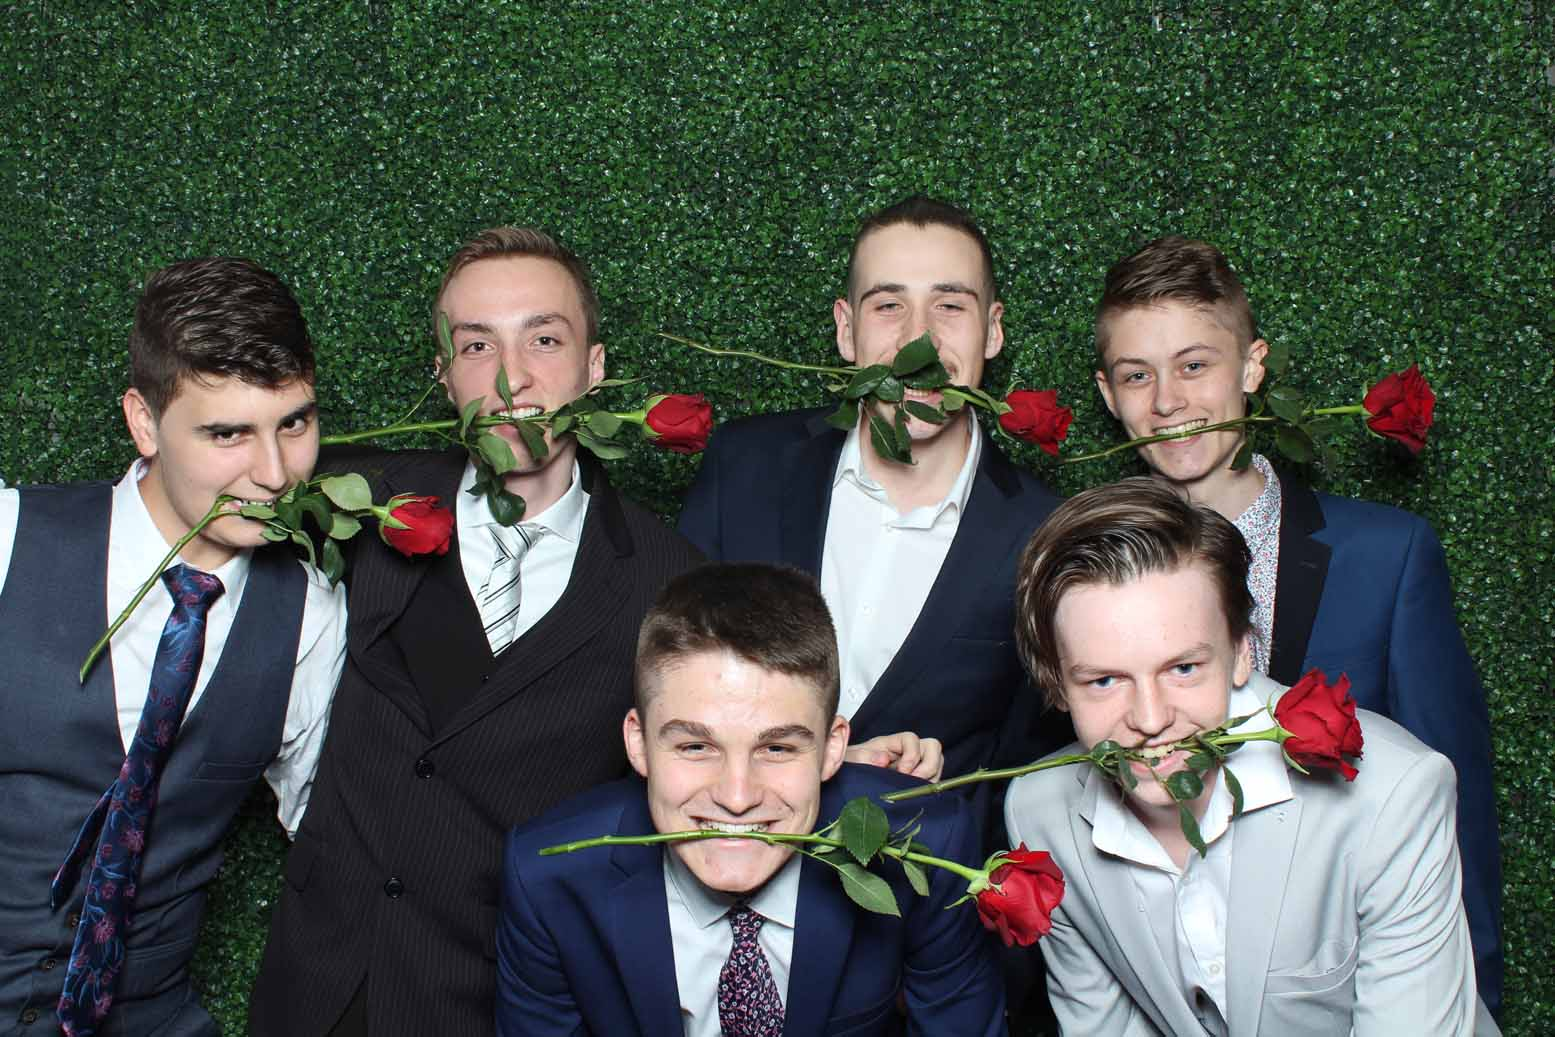 Green Wall backdrop for Photo booth